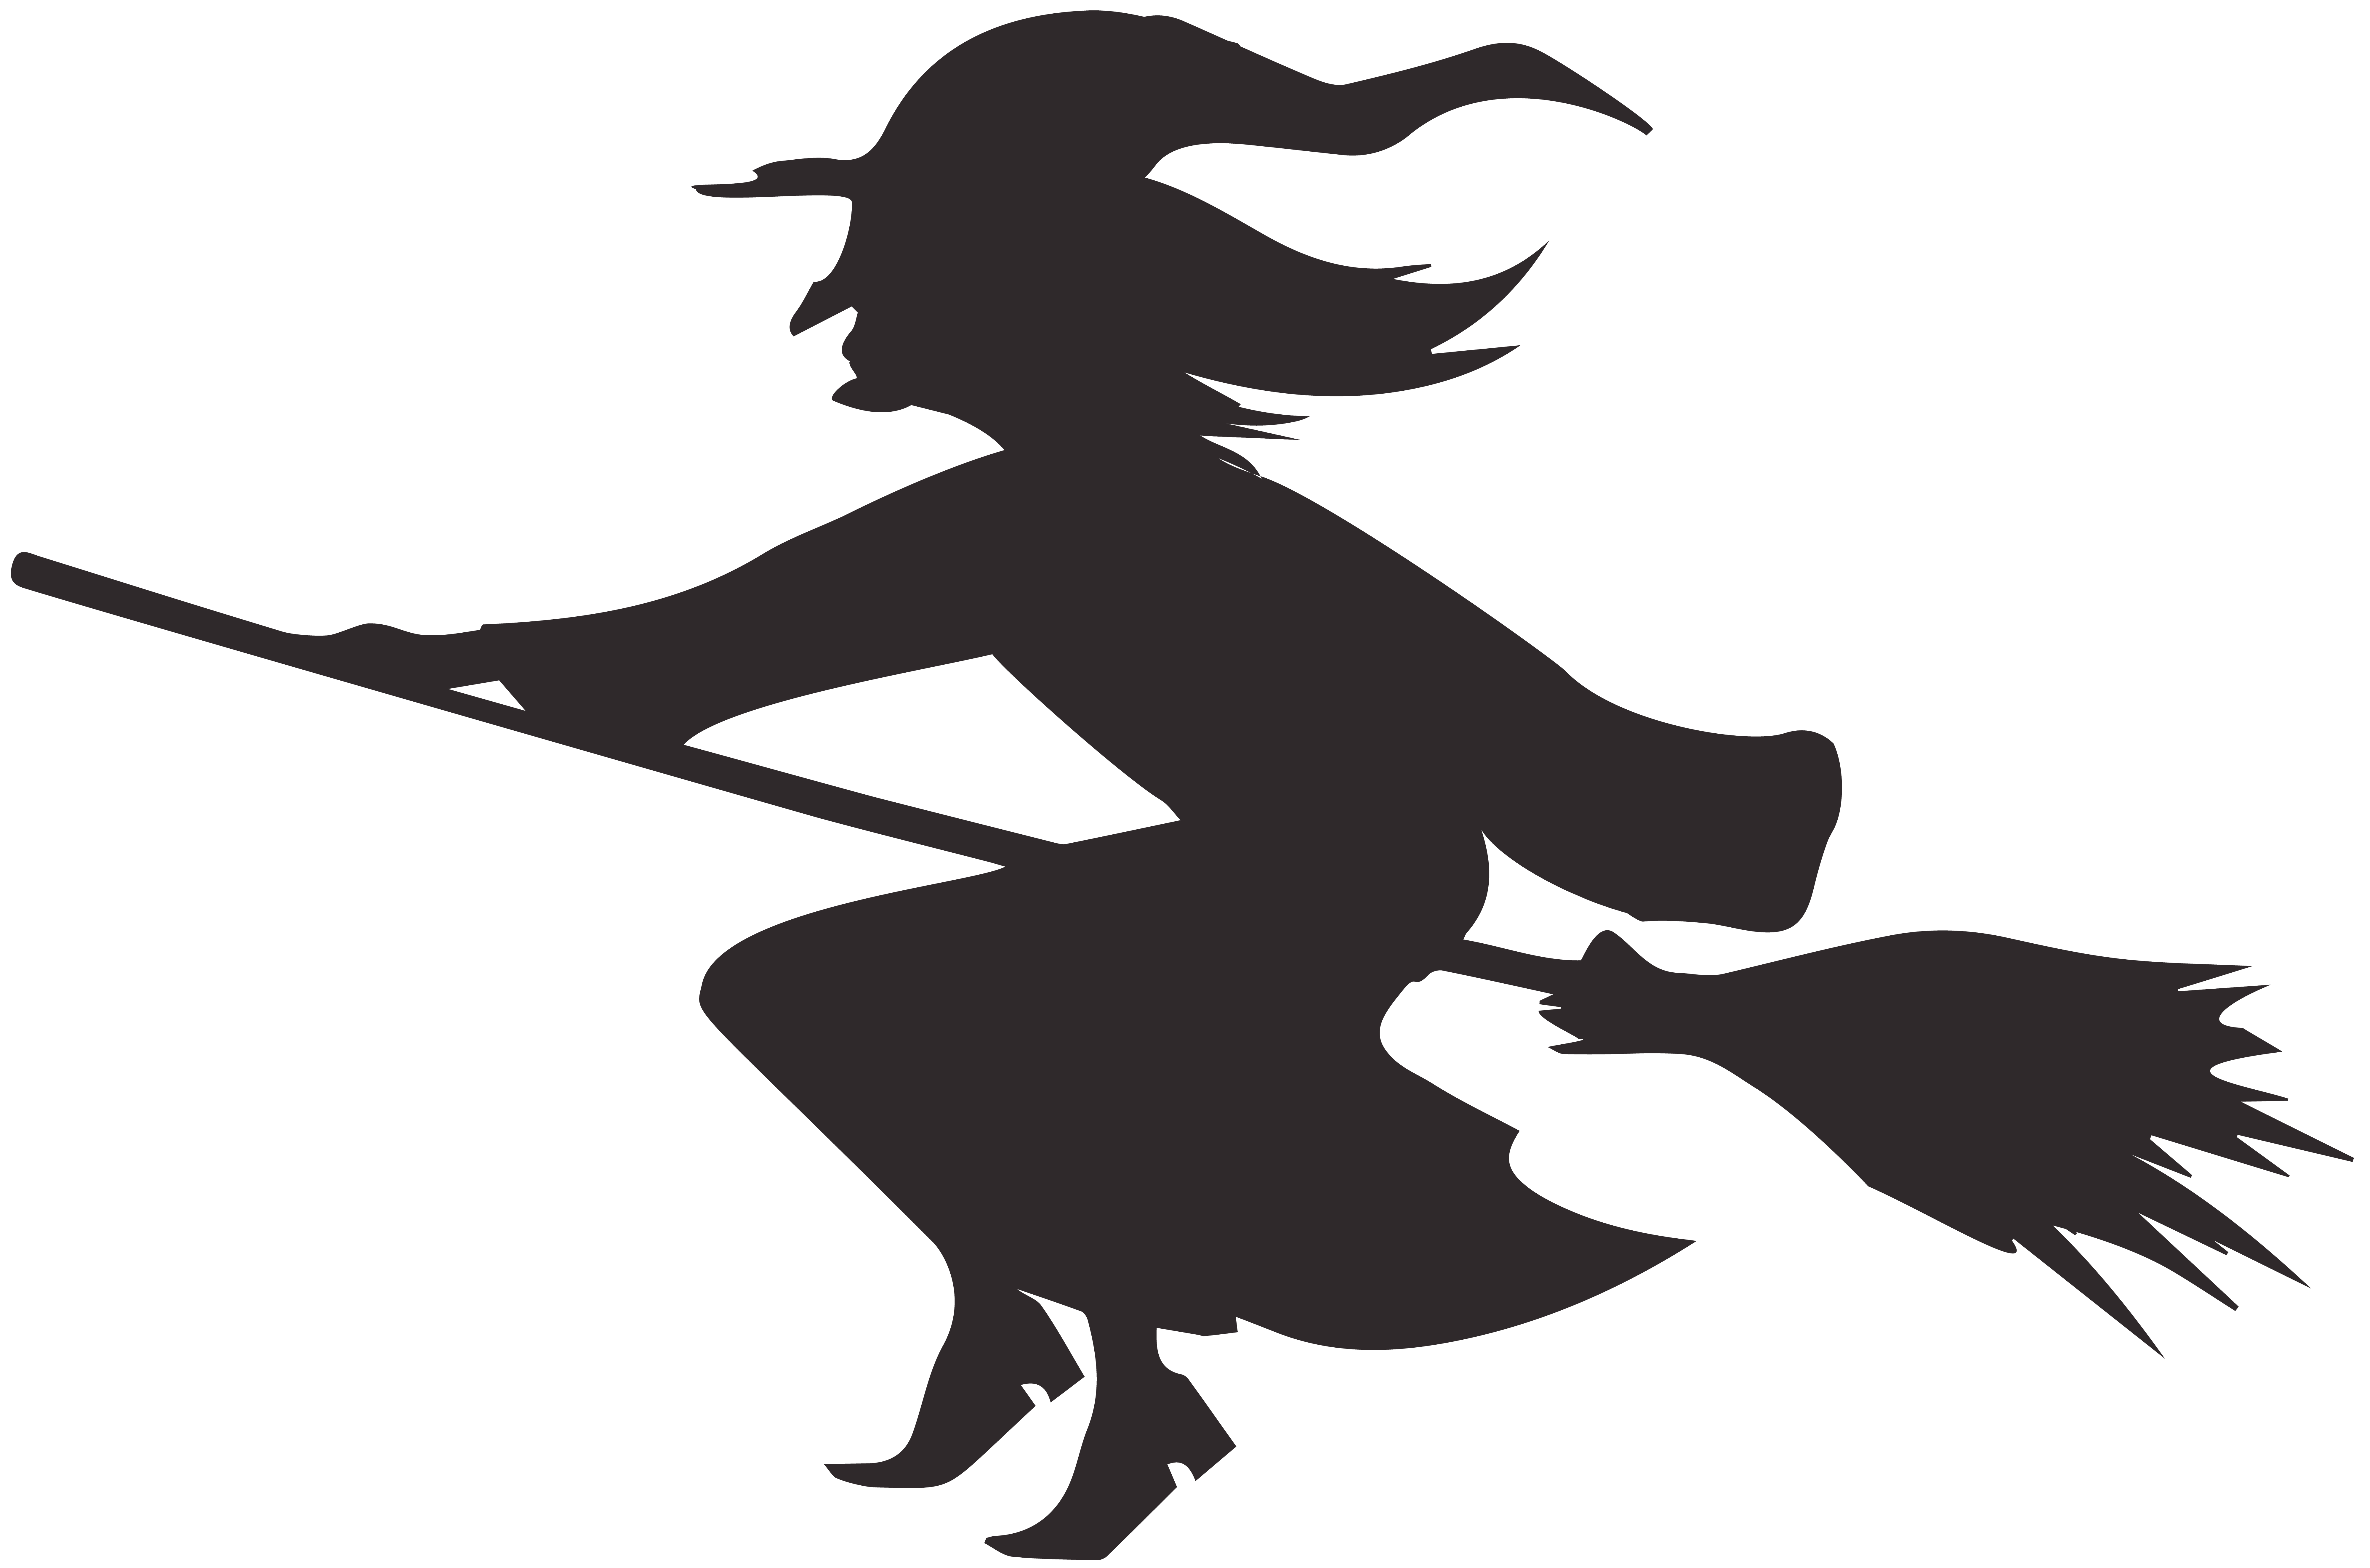 Halloween Witchcraft Silhouette Sewing.